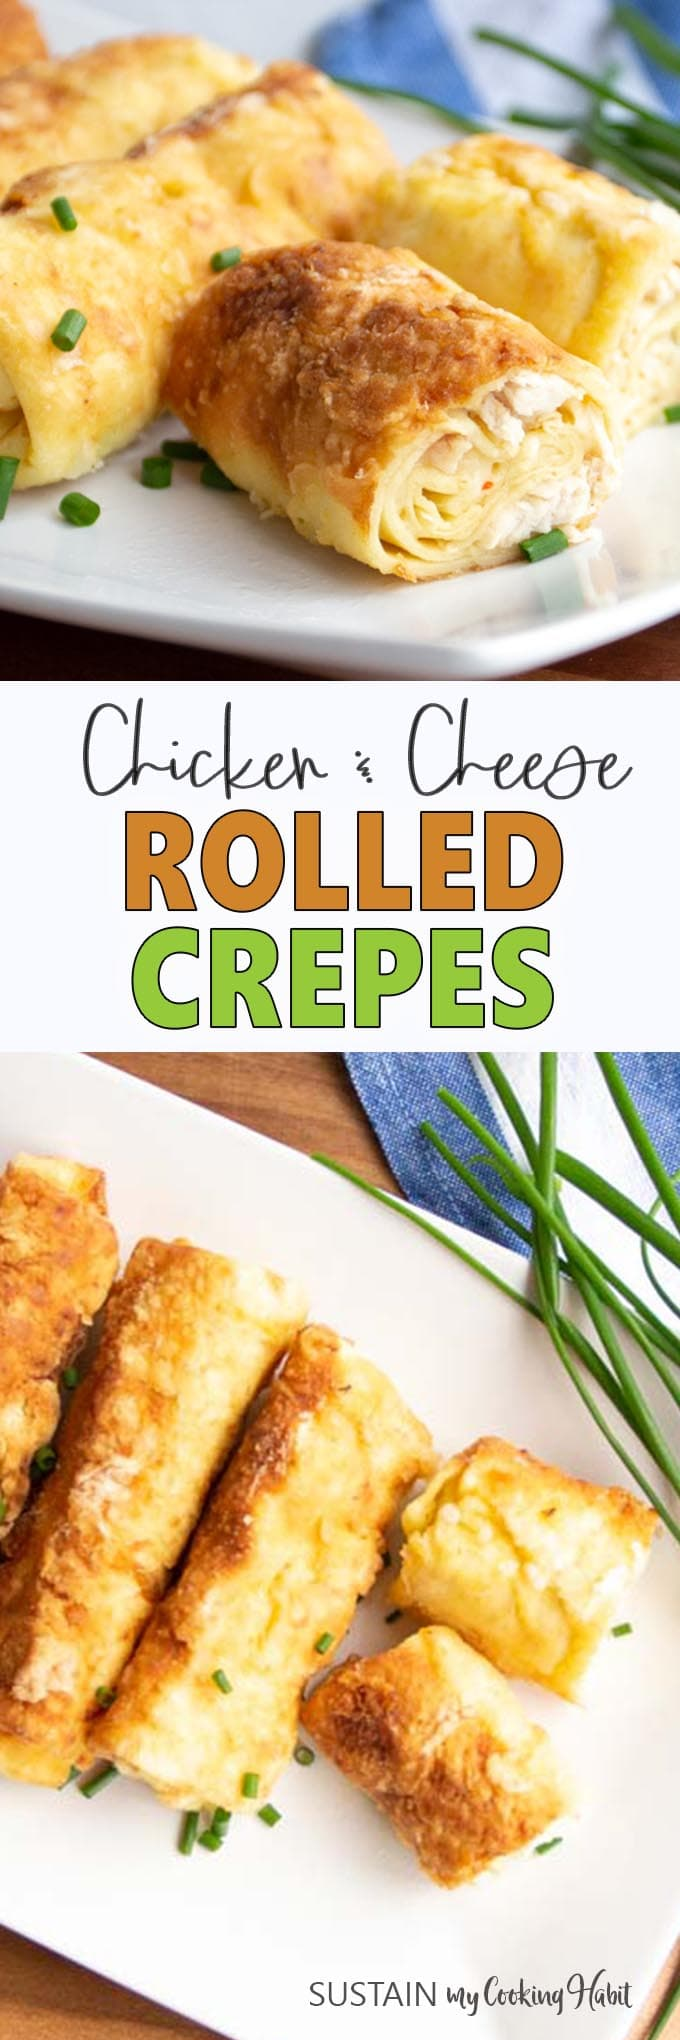 Collage of images showing various views of the rolled crepes with leftover chicken recipe.